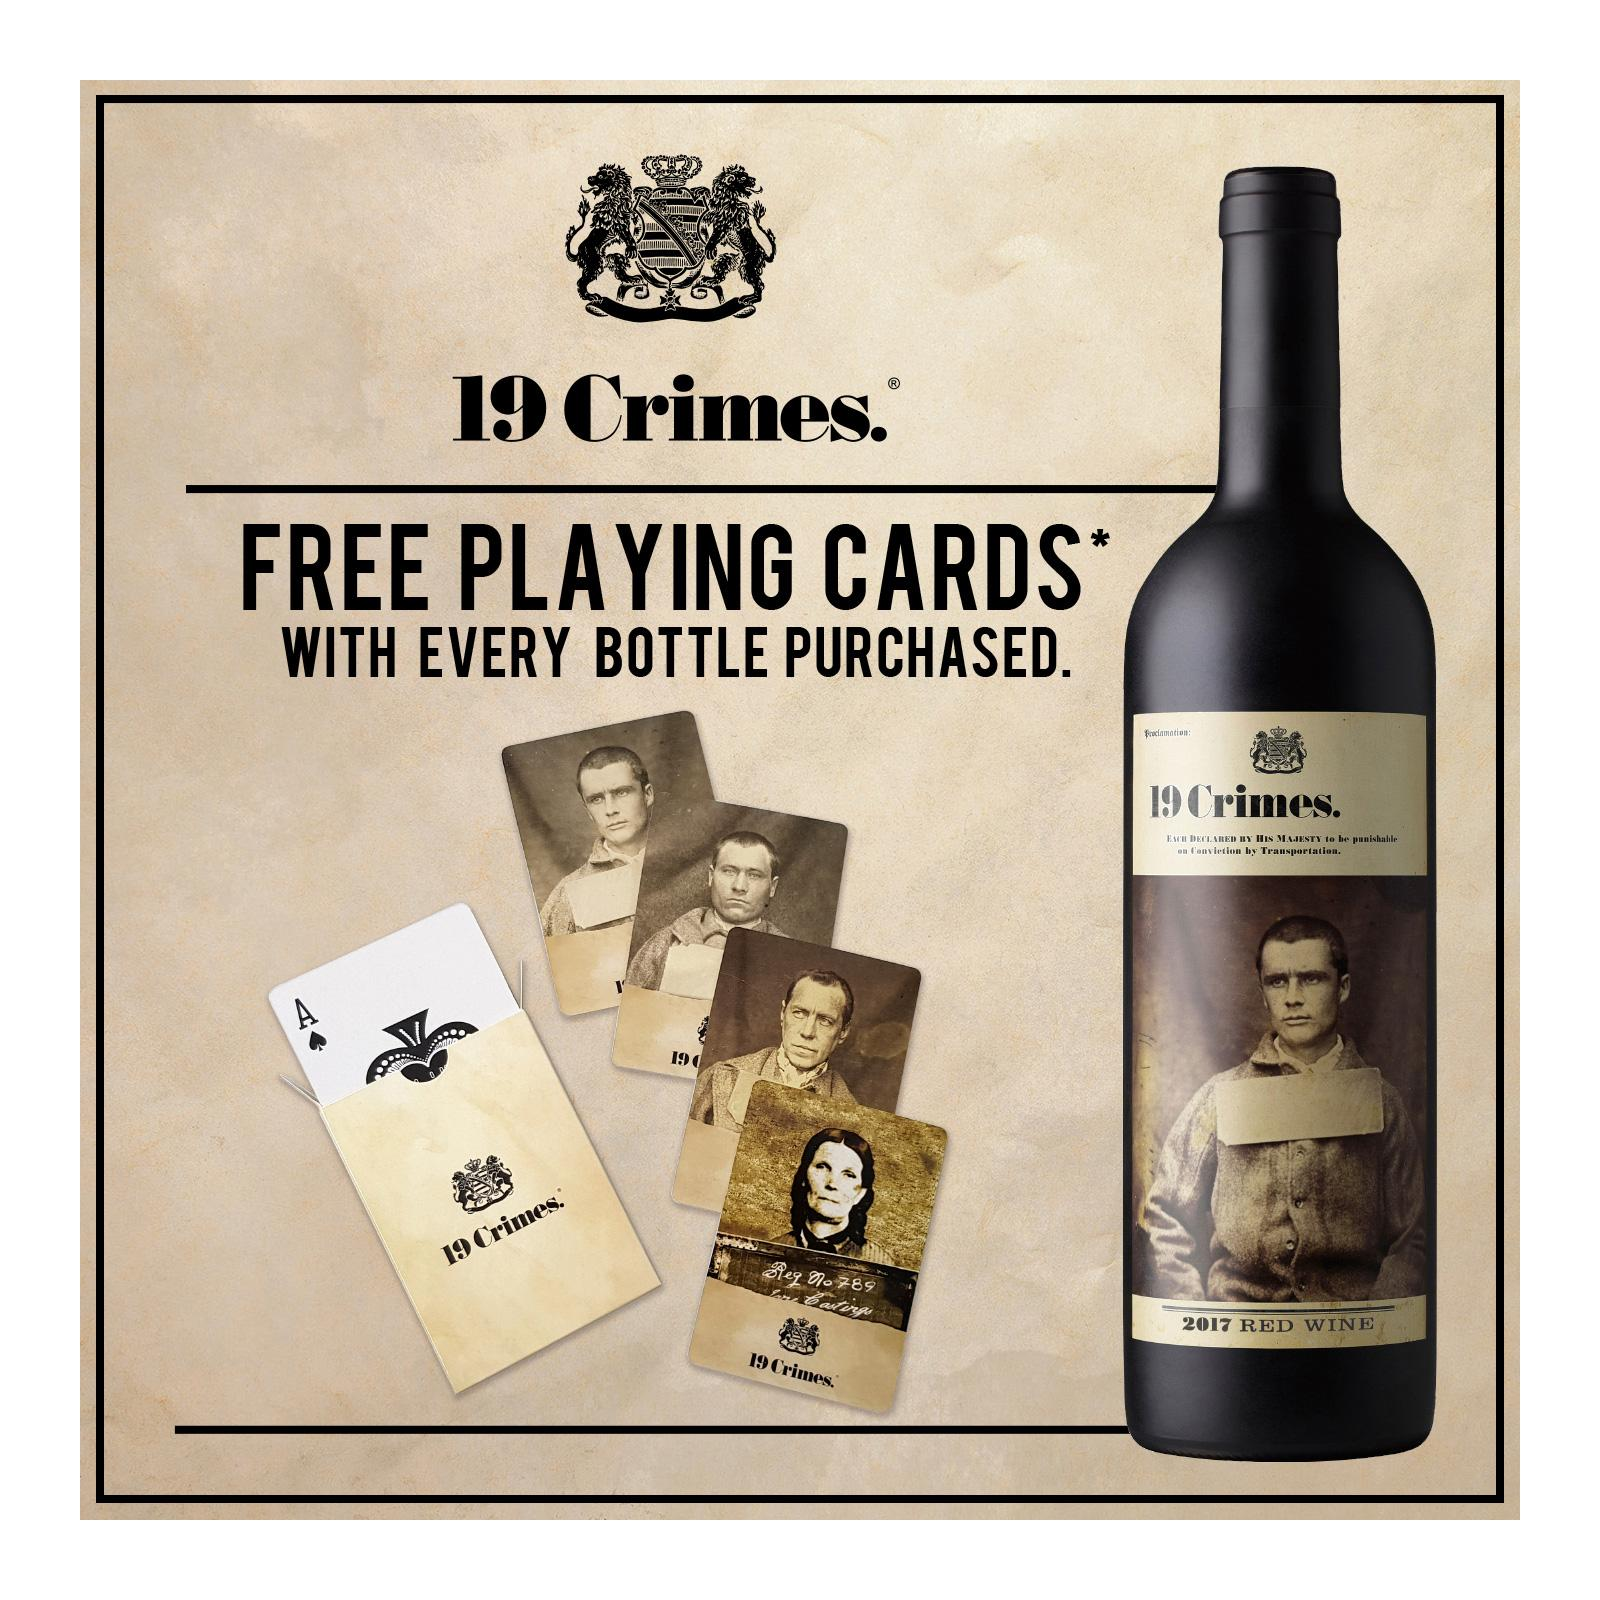 19 Crimes Red Blend Bold Red Wine with Free Playing Cards*